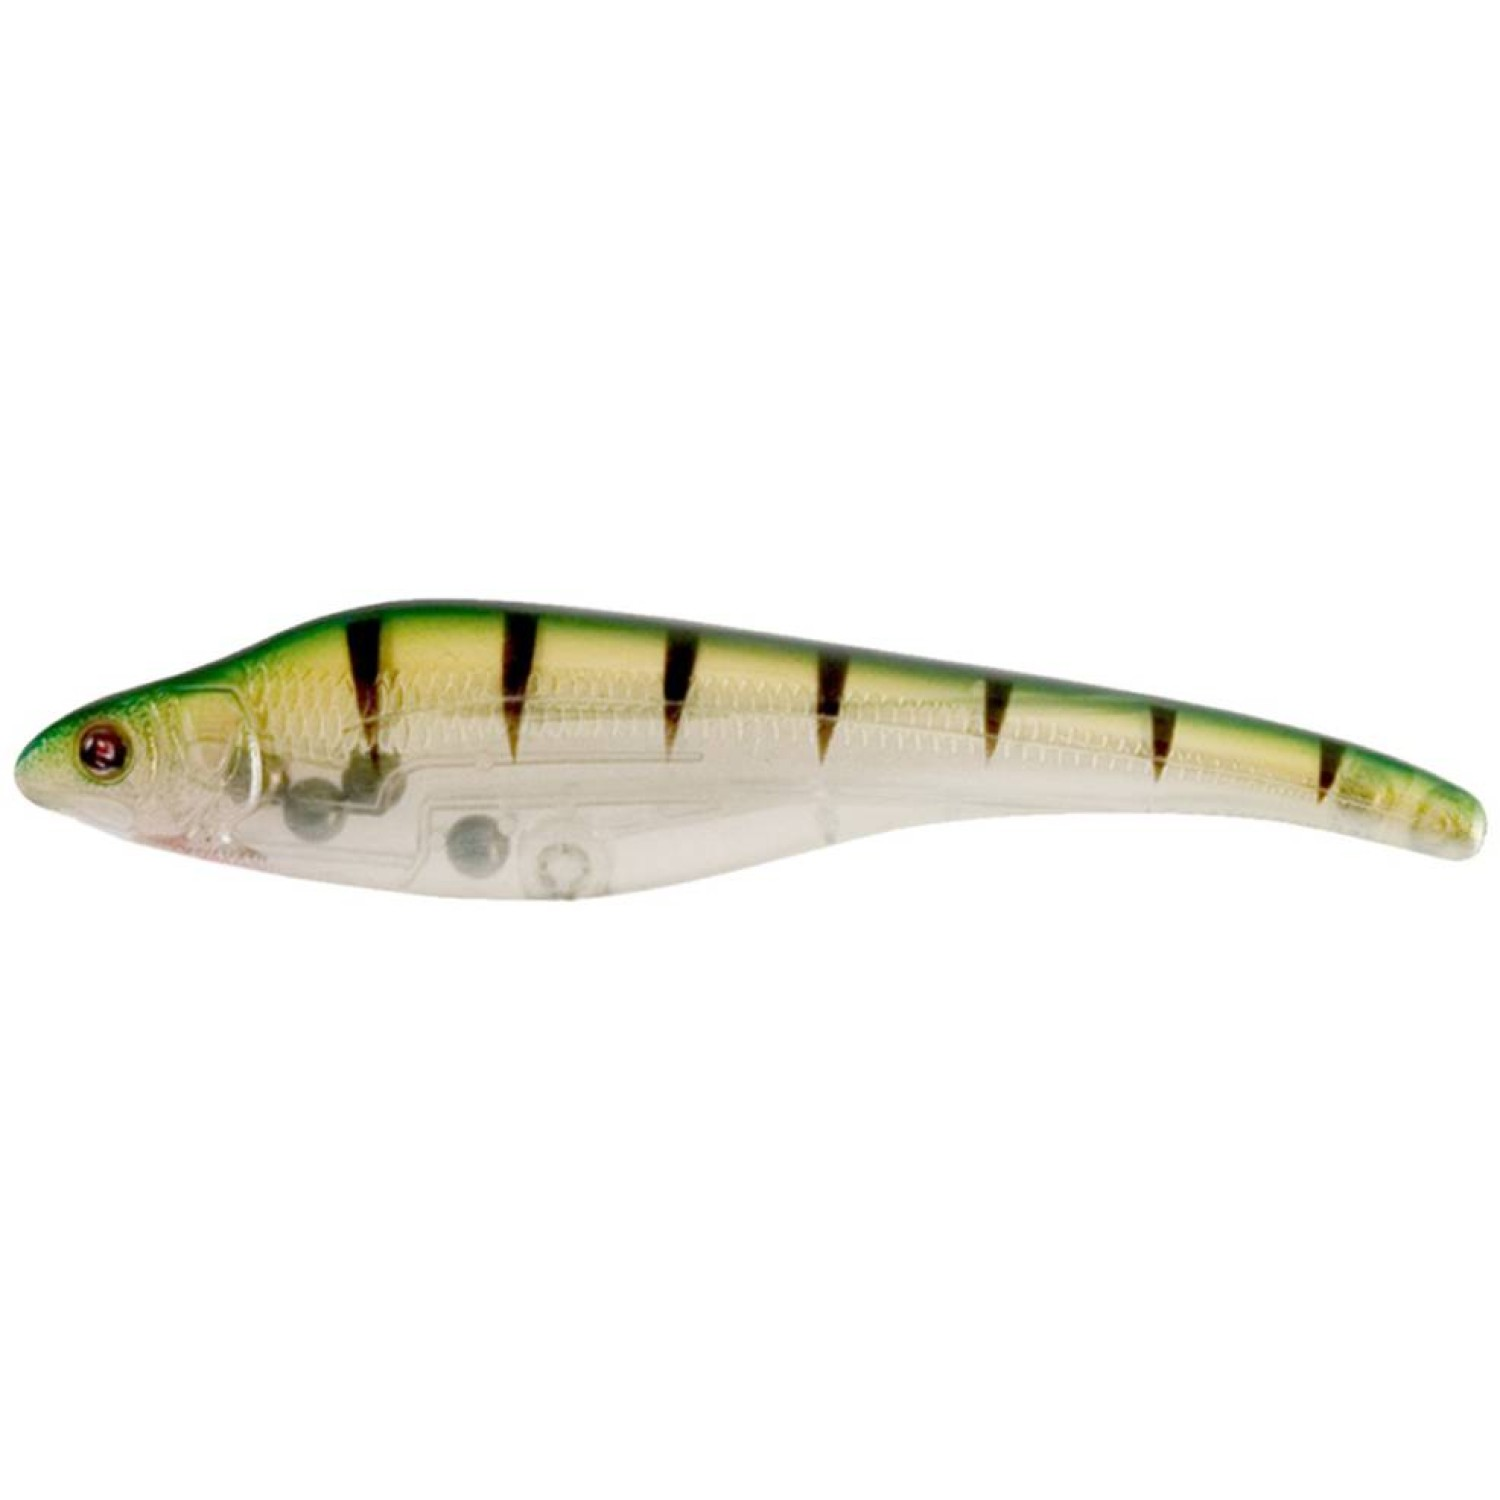 Sebile Acast Minnow - Medium Lip 9.5cm - 12.5cm